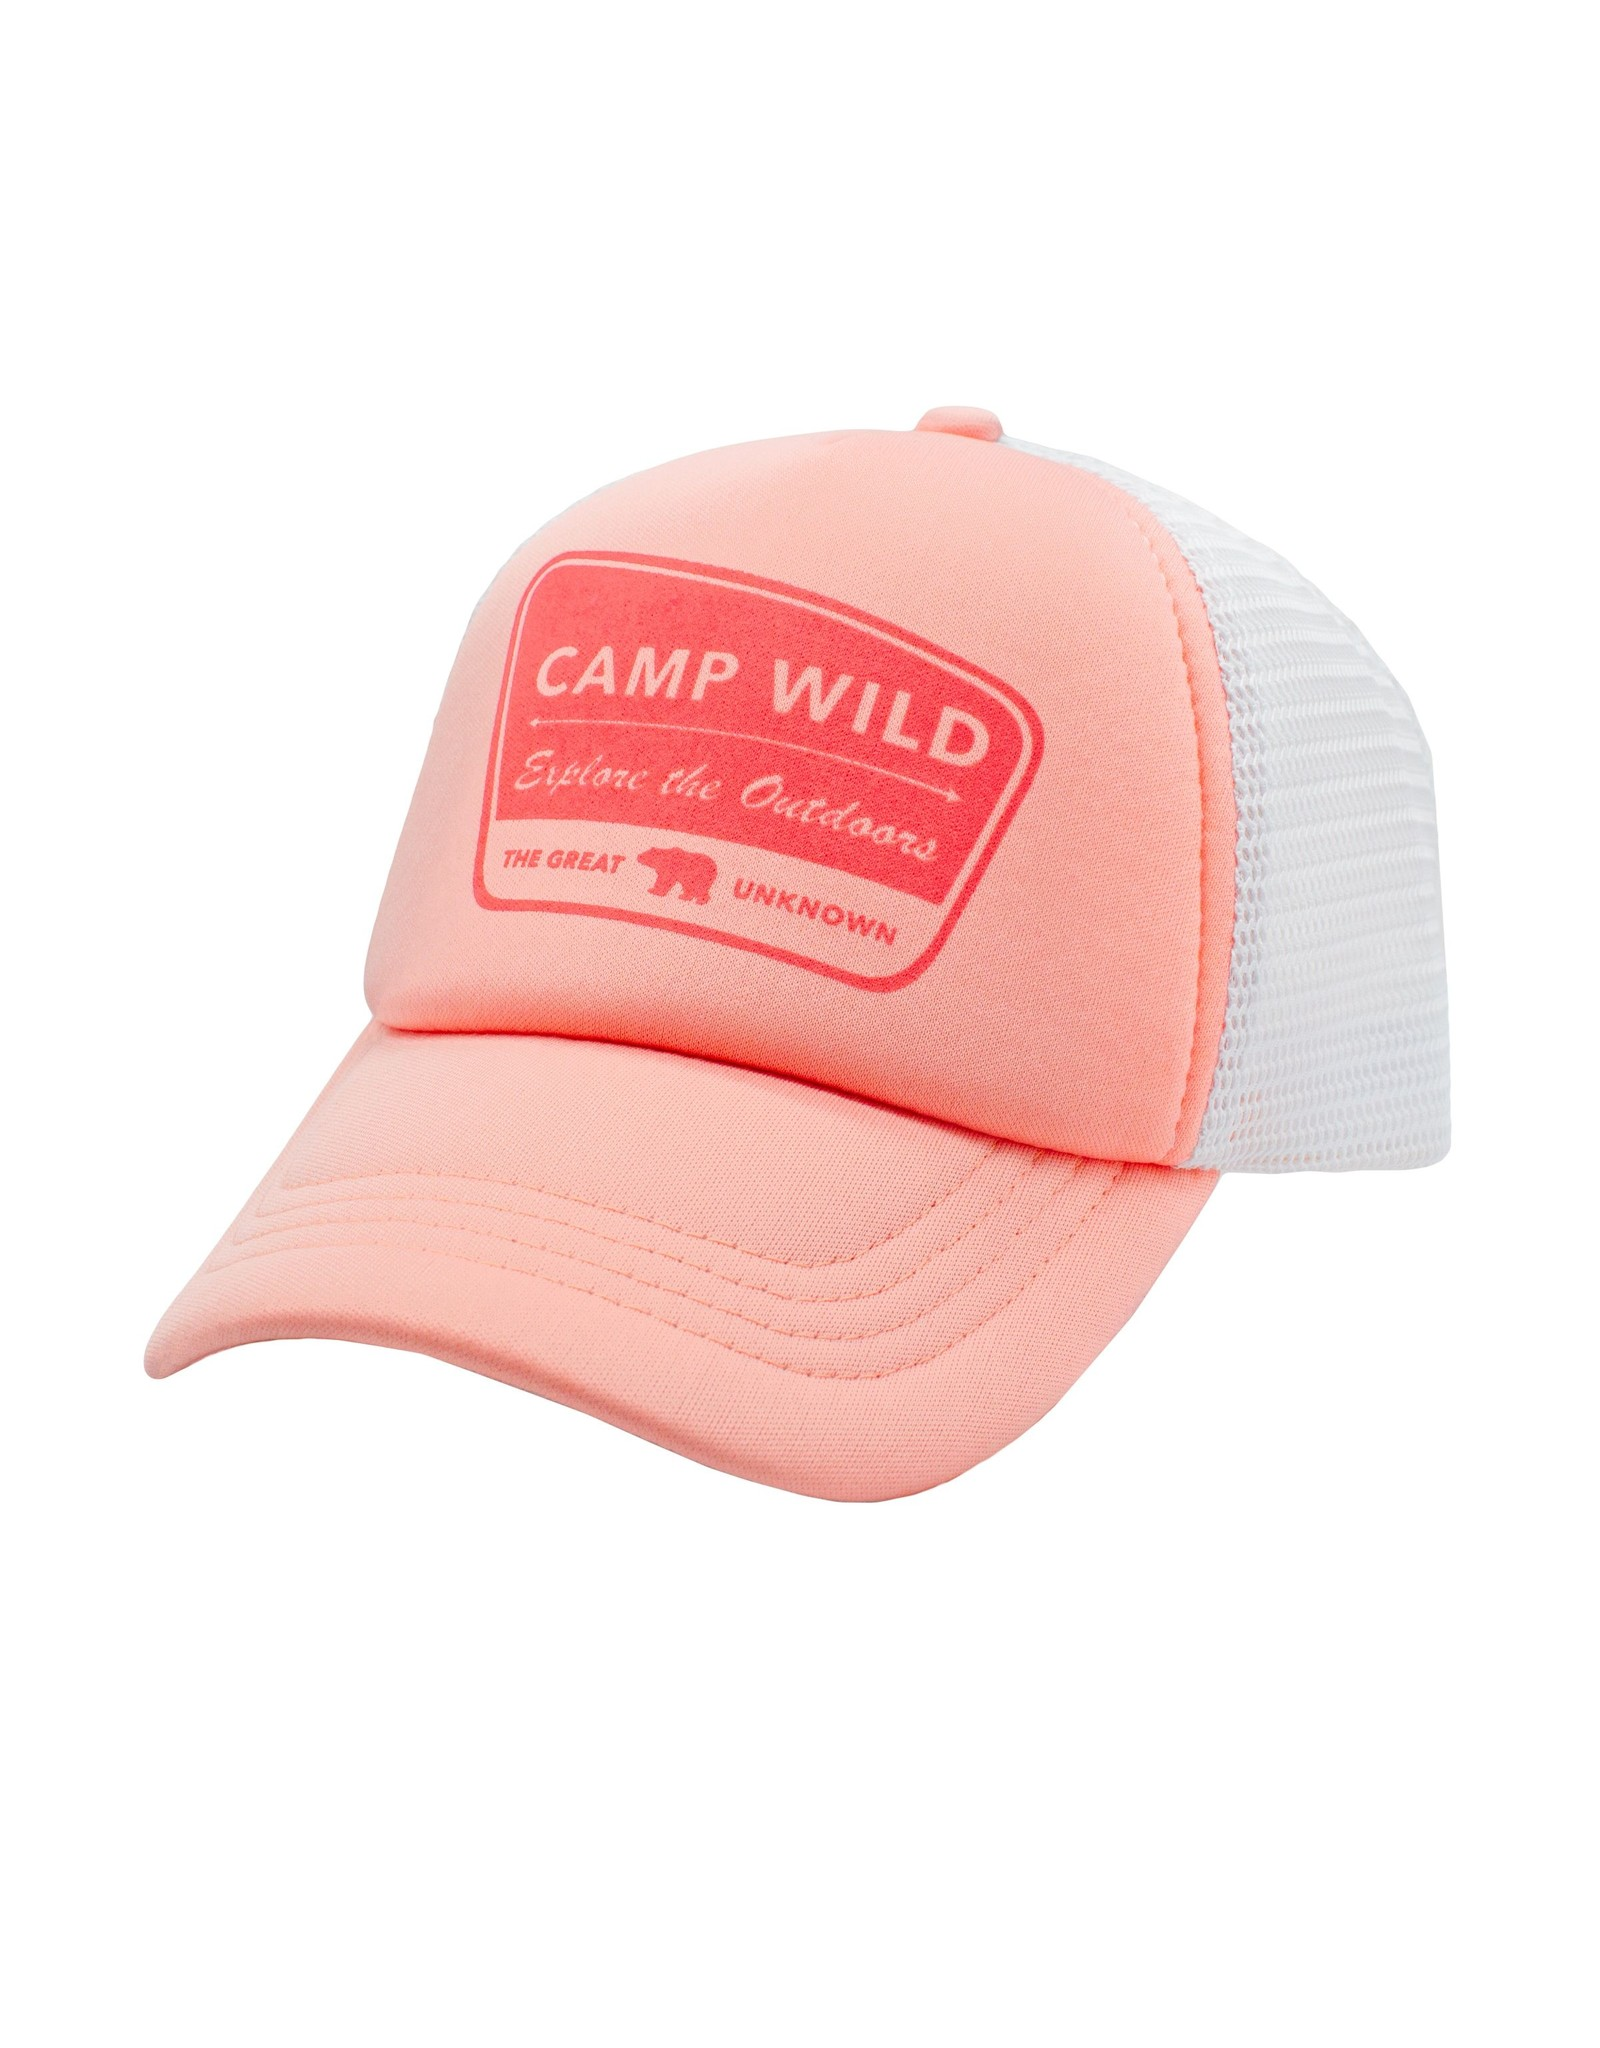 Feather 4 Arrow camp wild hat- coral